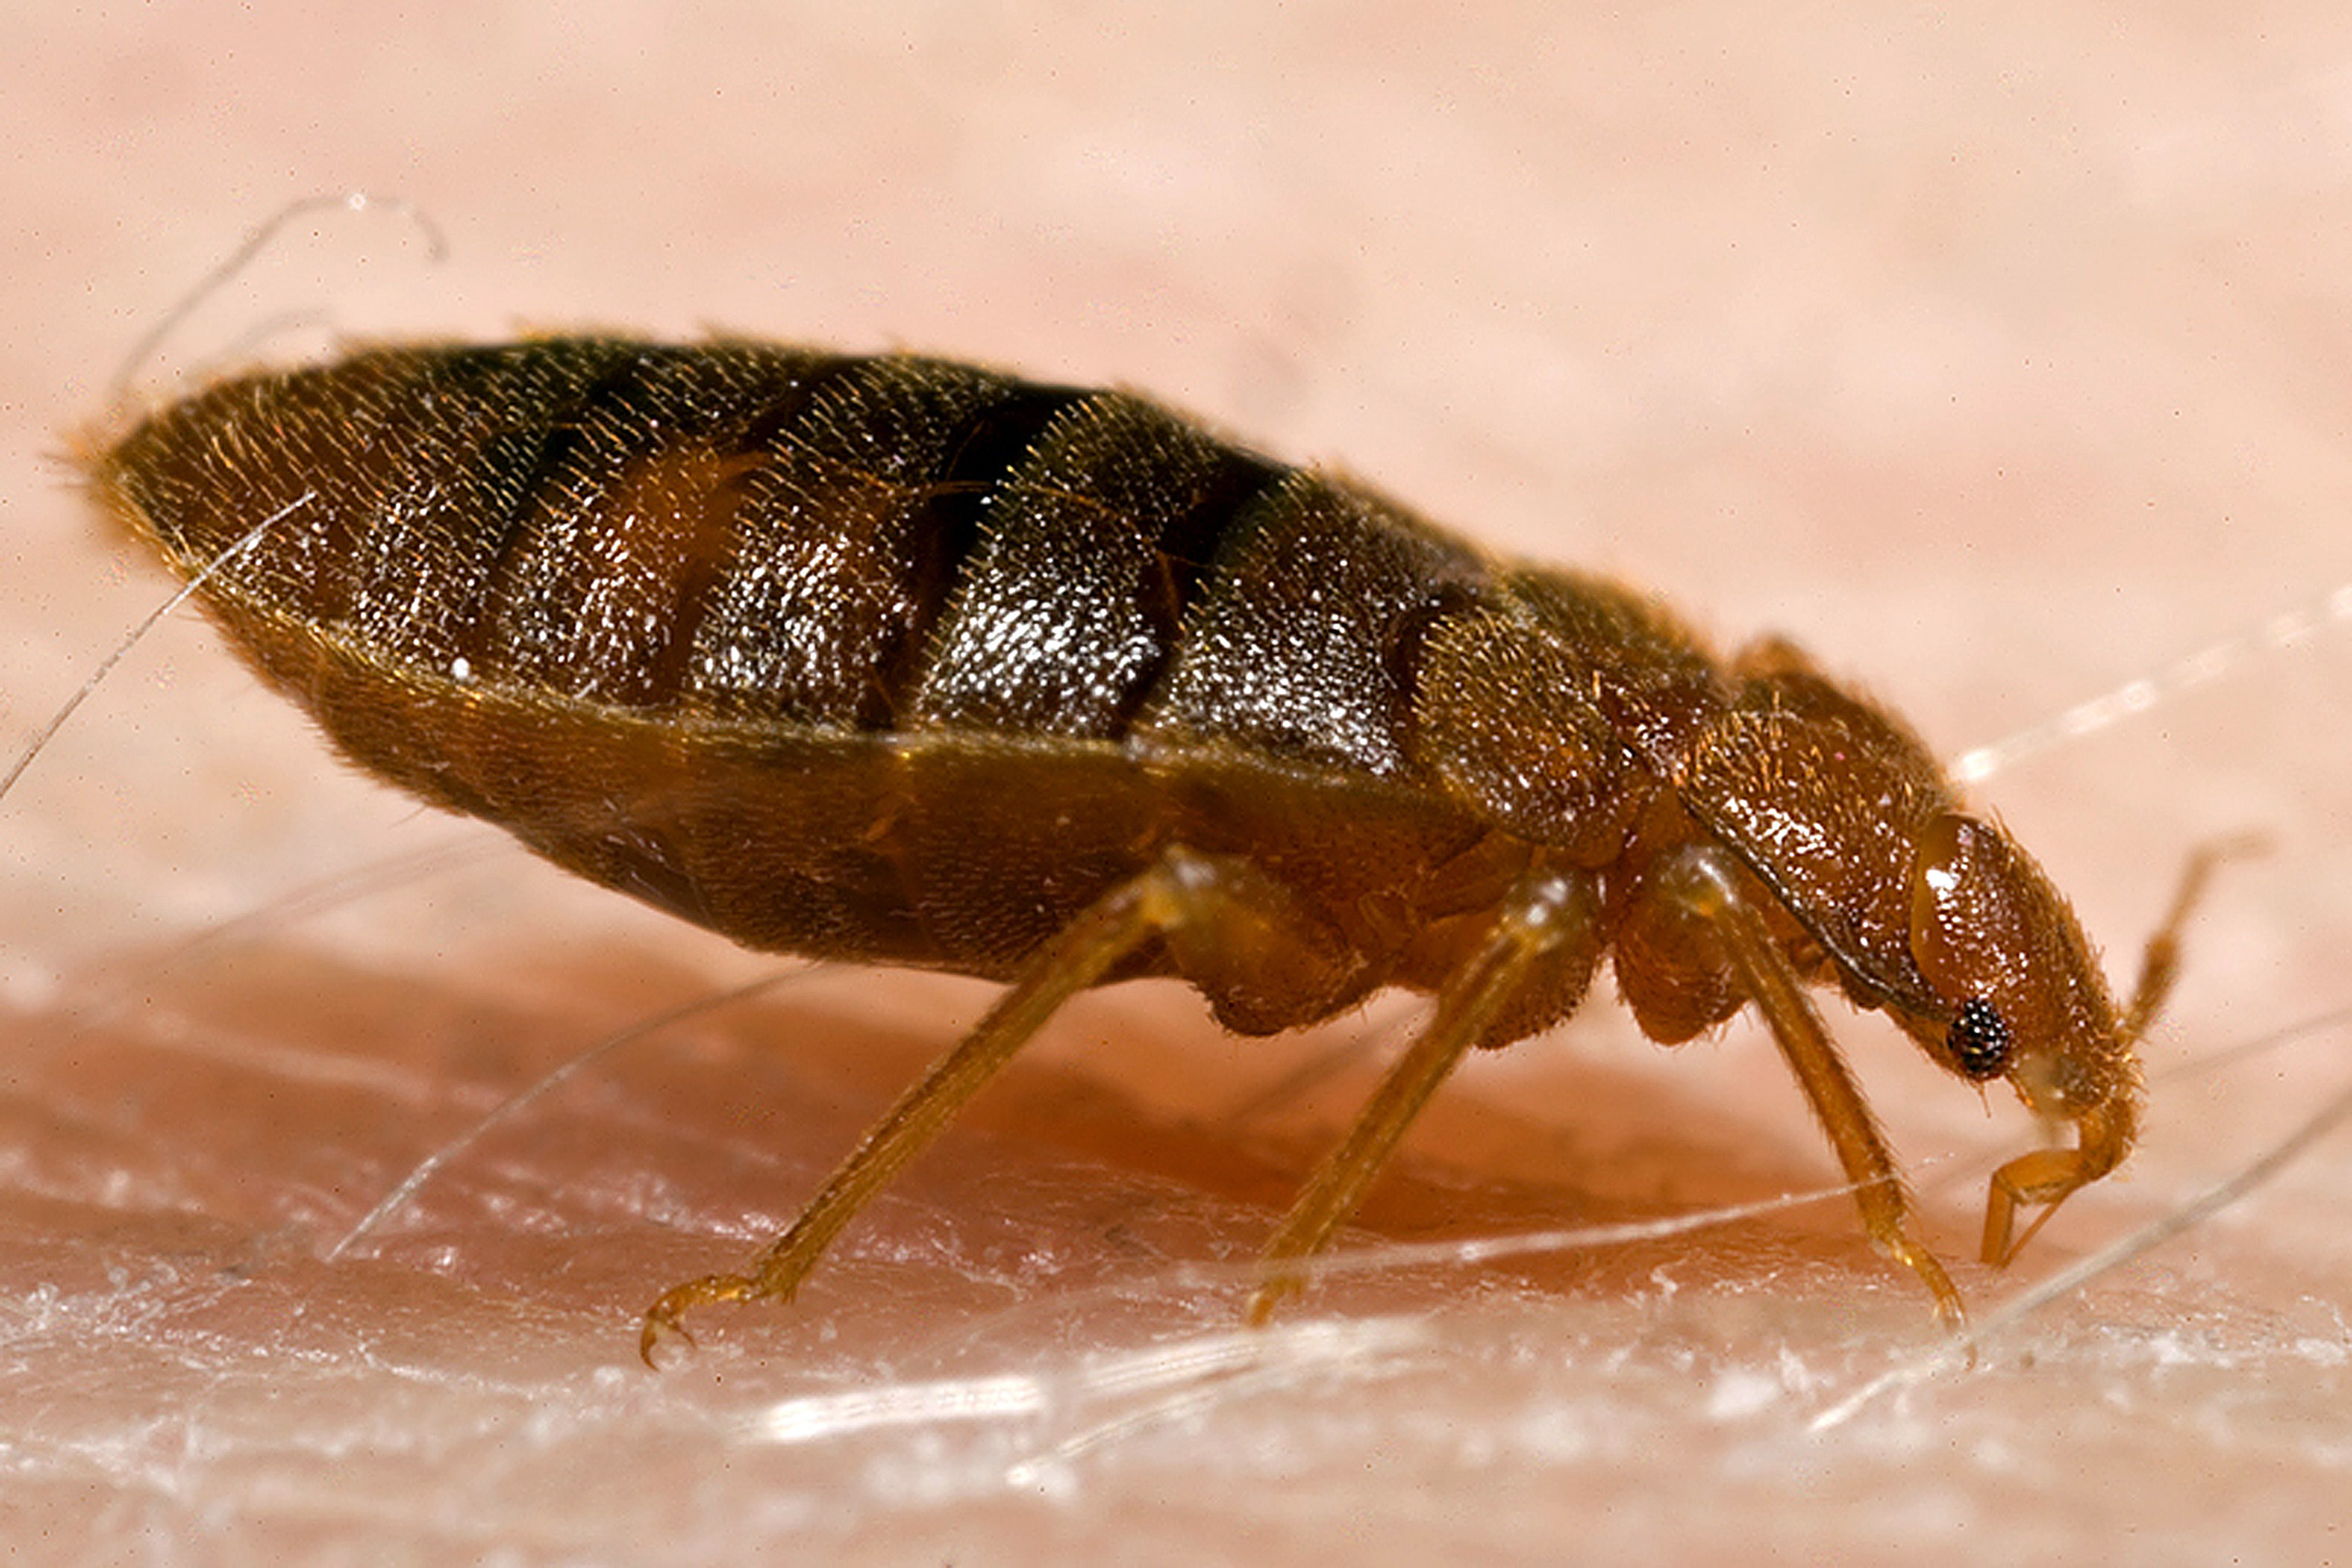 symptoms of bed bugs kills flea treatments bug how to at tell in night axe for stains fleas natural from rid get chemical do bites what dr are check you a vs fast mosquito mattress facts